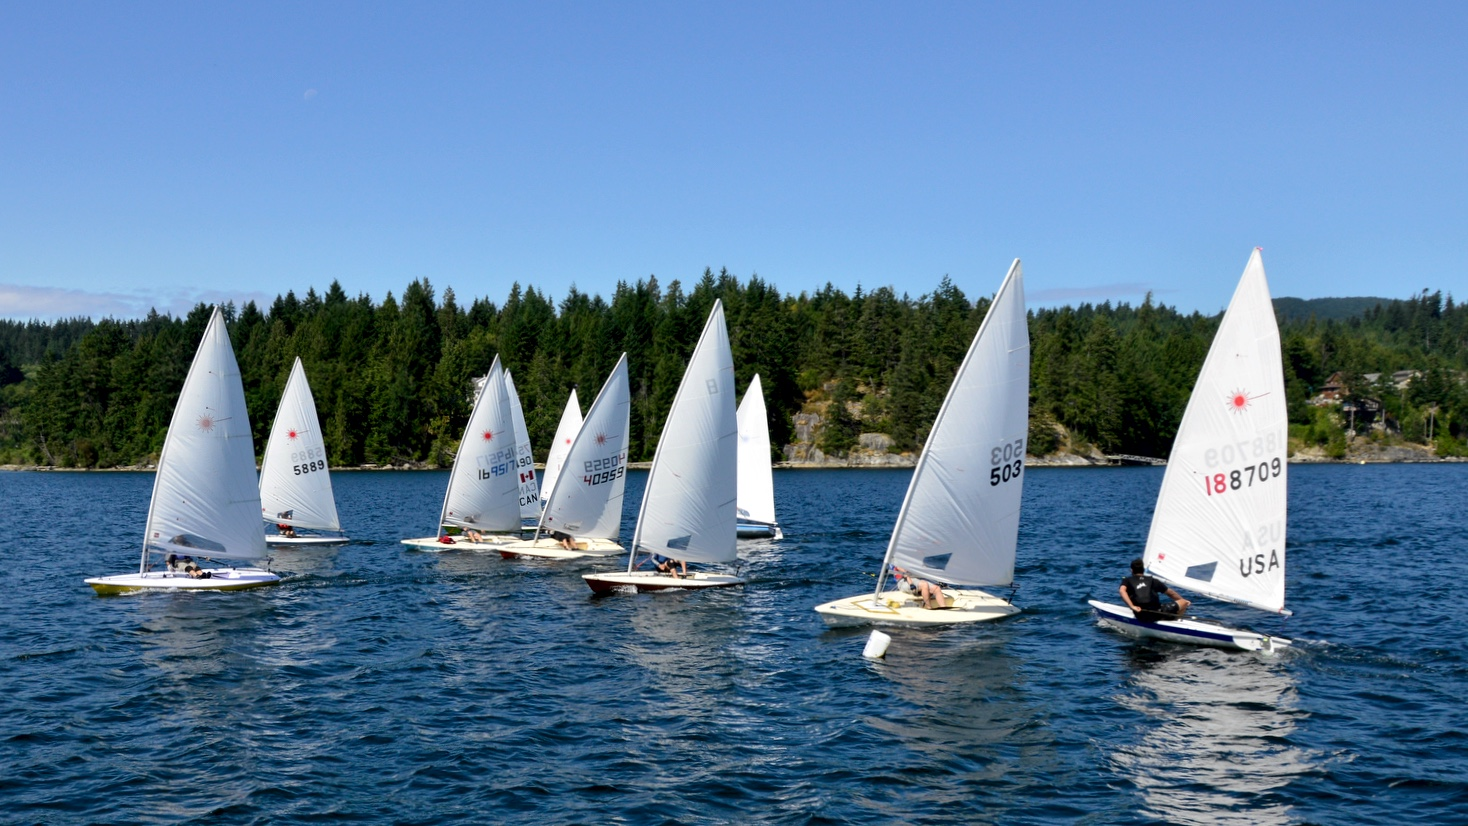 Race Start of the 6th Annual Poise Cove Regatta July 16th, 2017